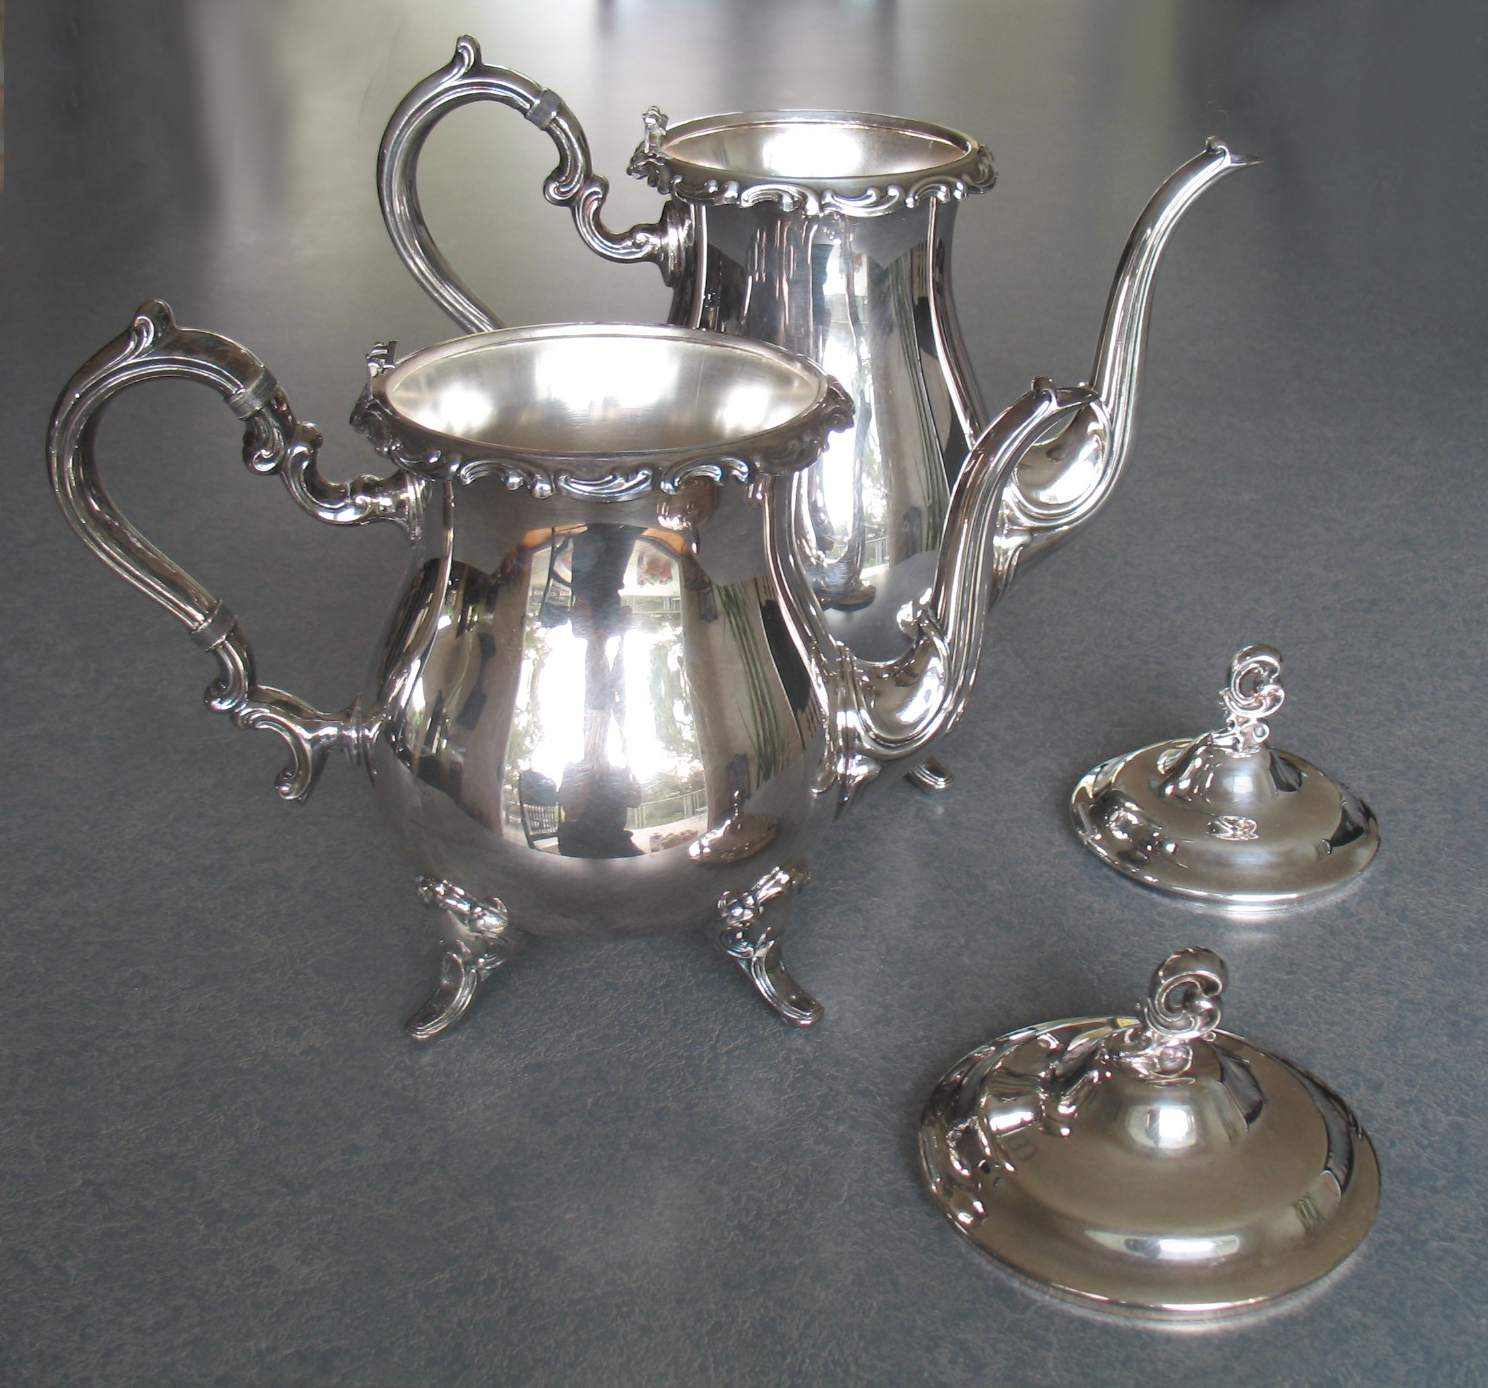 Silverplate coffeepot and teapot with the hinge broken